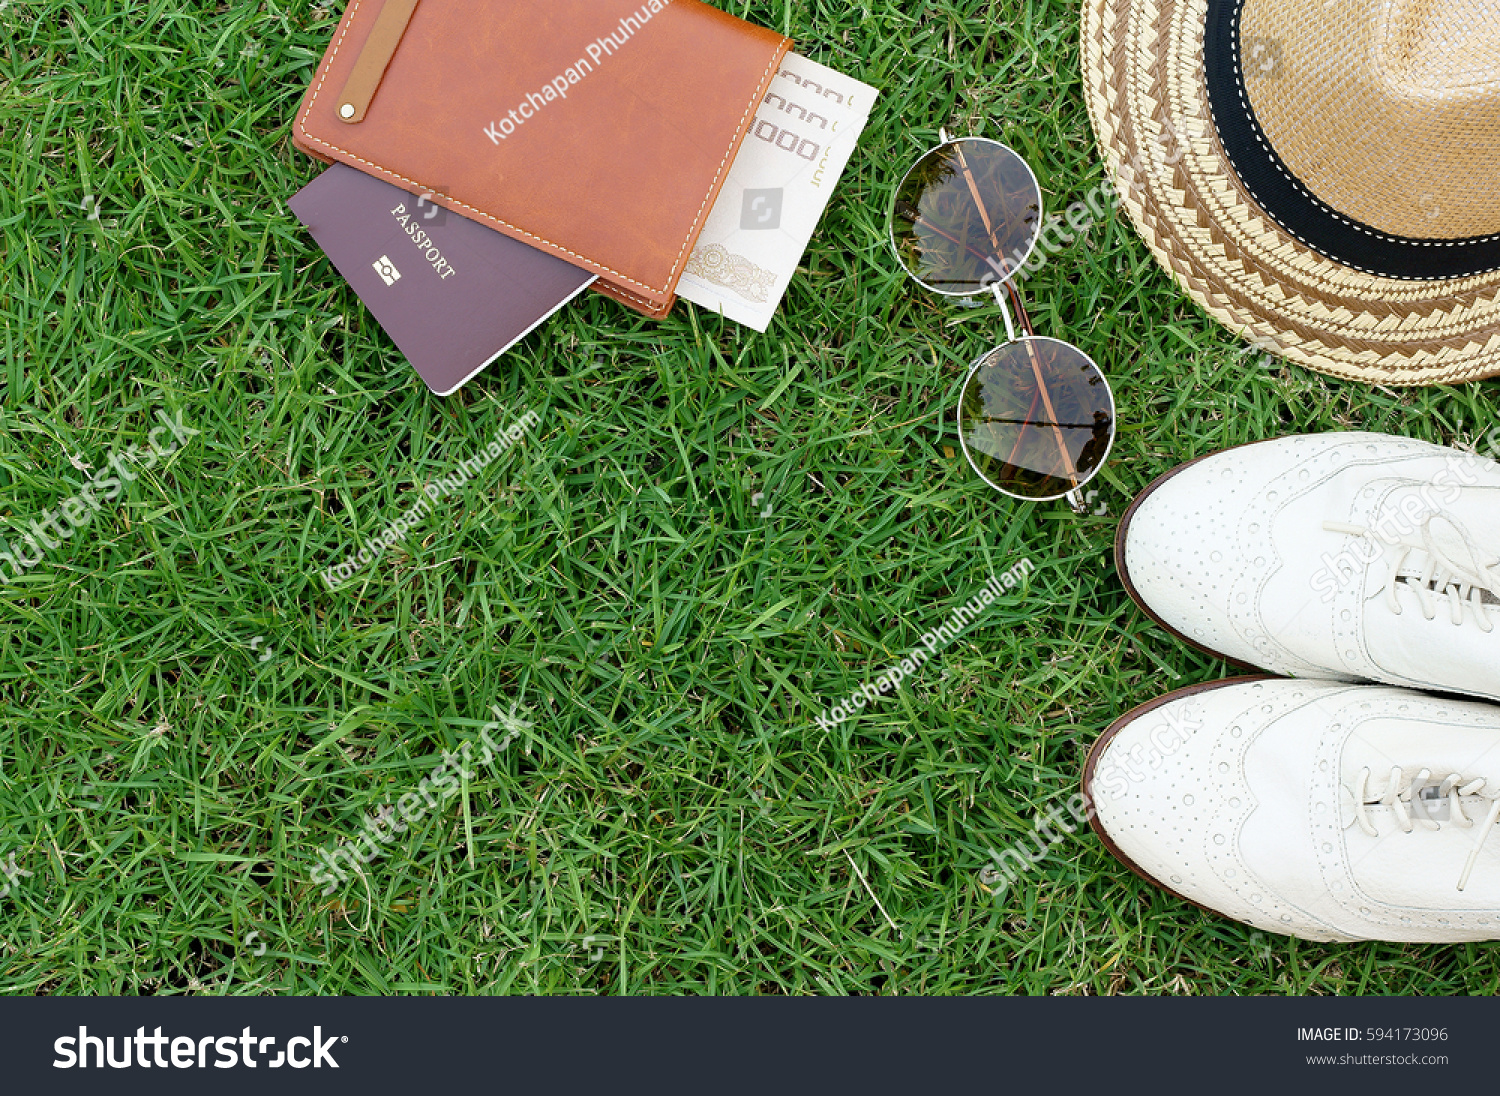 Hats Passport Glasses Shoes On Grass Stock Photo 594173096 ...